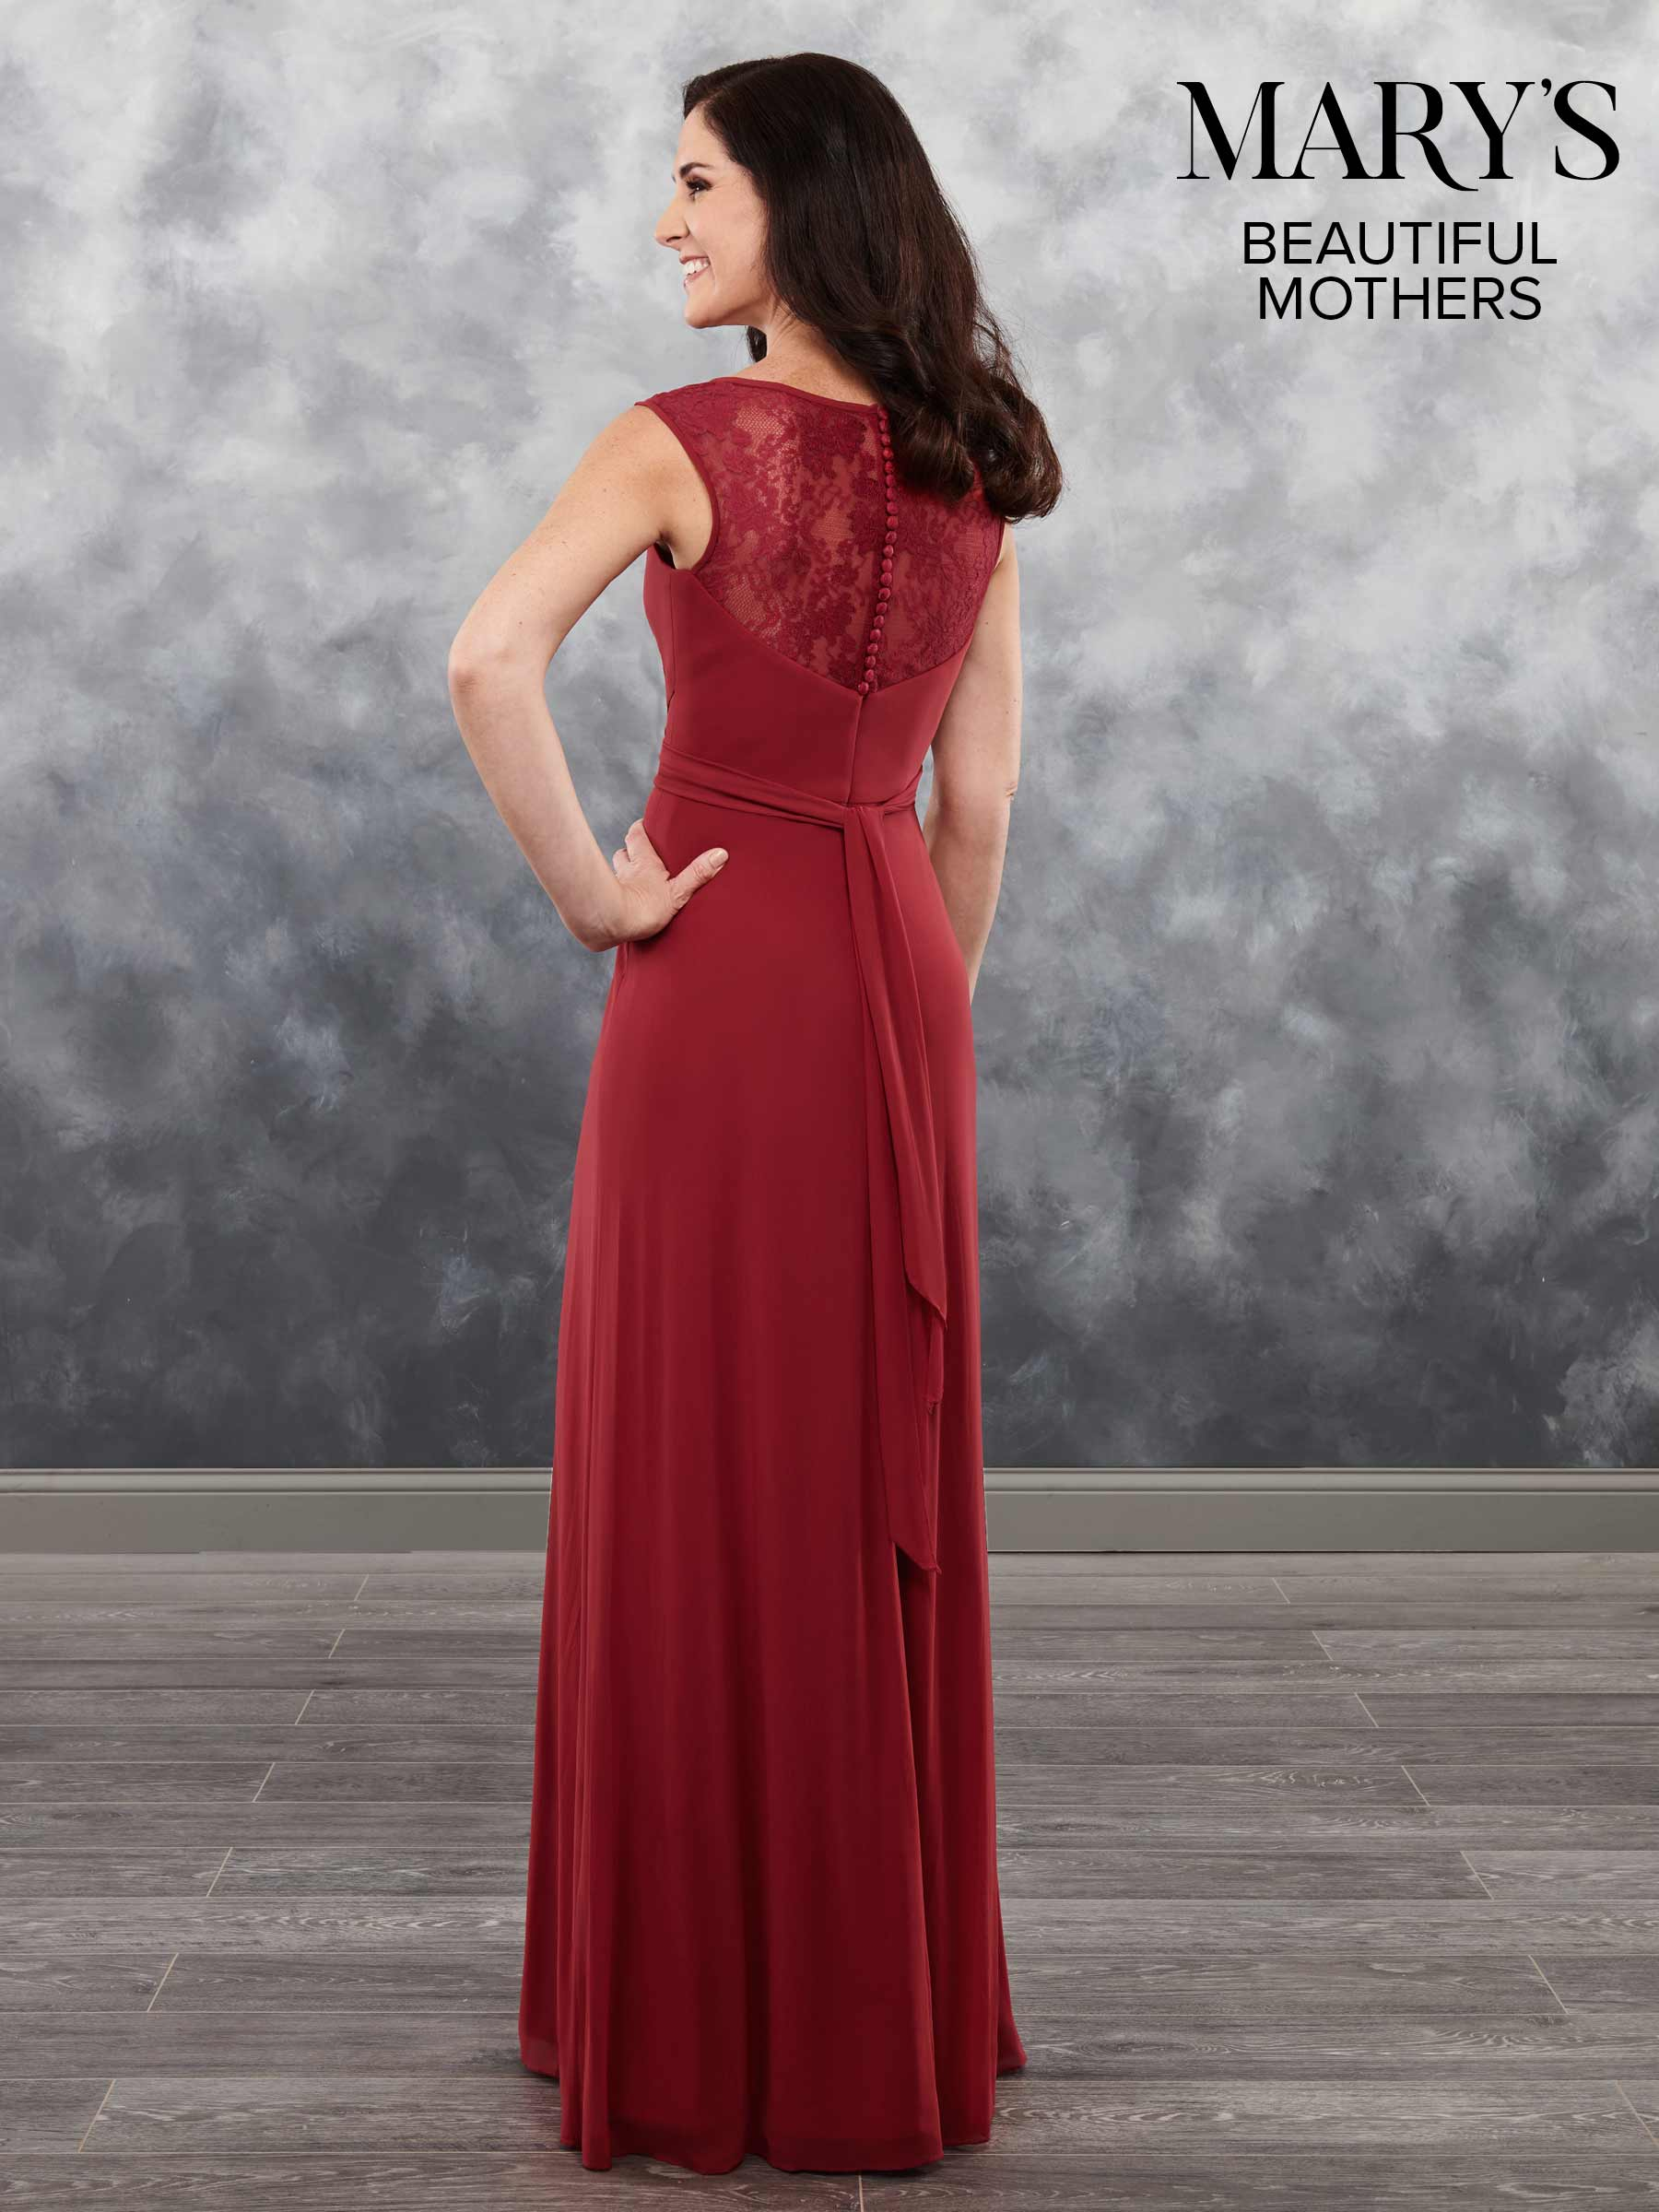 Mother Of The Bride Dresses | Beautiful Mothers | Style - MB8023